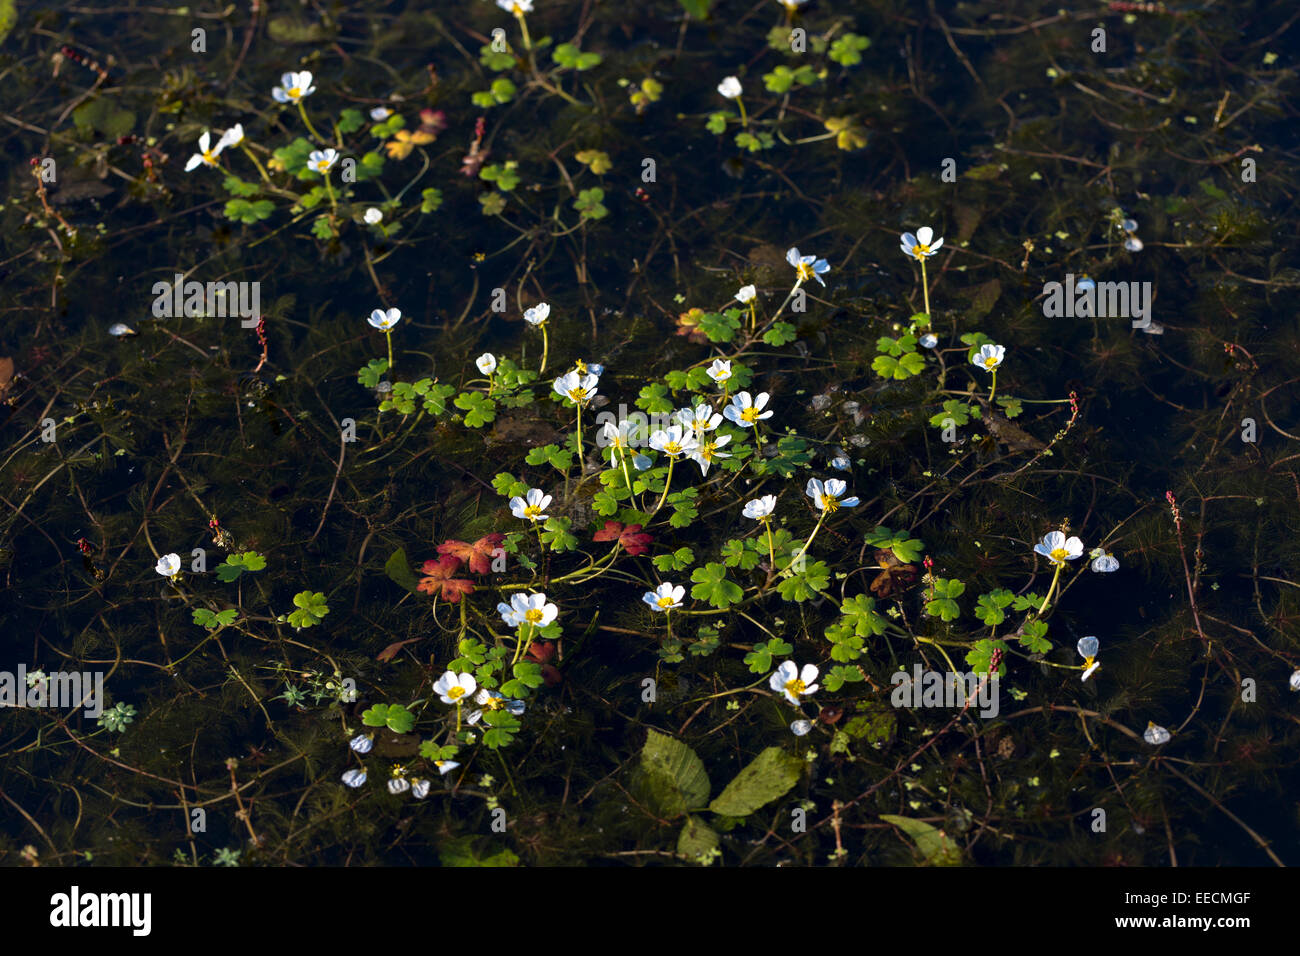 Perennial herbaceous wildflowers in hedgerow in England - Stock Image